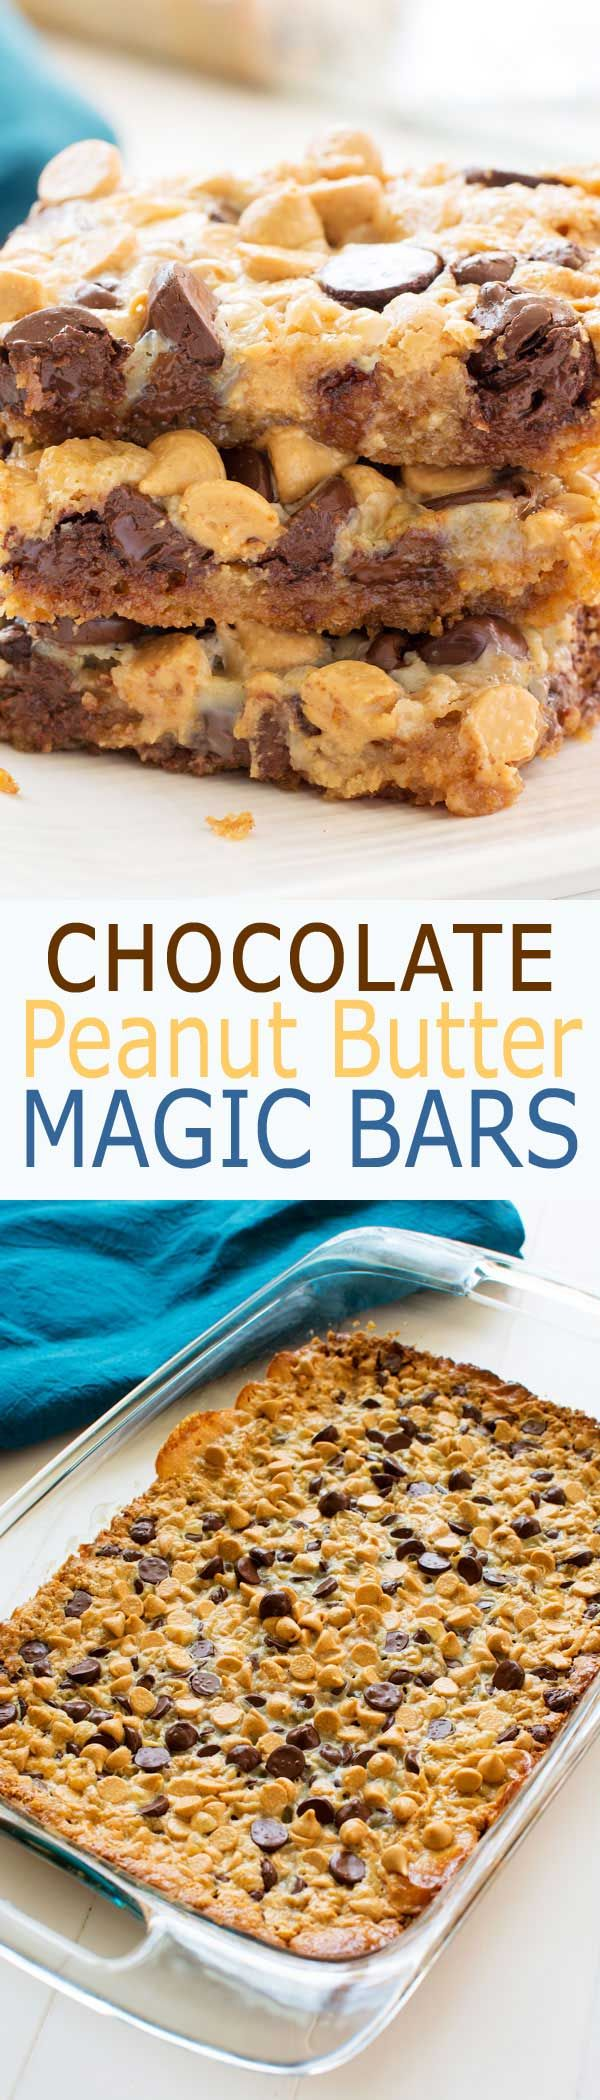 Fudgy Chocolate Peanut Butter Magic bars with layers of chocolate chips, peanut butter chips and sweetened condensed milk on a graham cracker crust! #dessert #baking #recipe #dessertrecipes #recipeoftheday #recipeoftheweek #easter #partyfood #potluck #peanutbutter #chocolate #foodblog #food